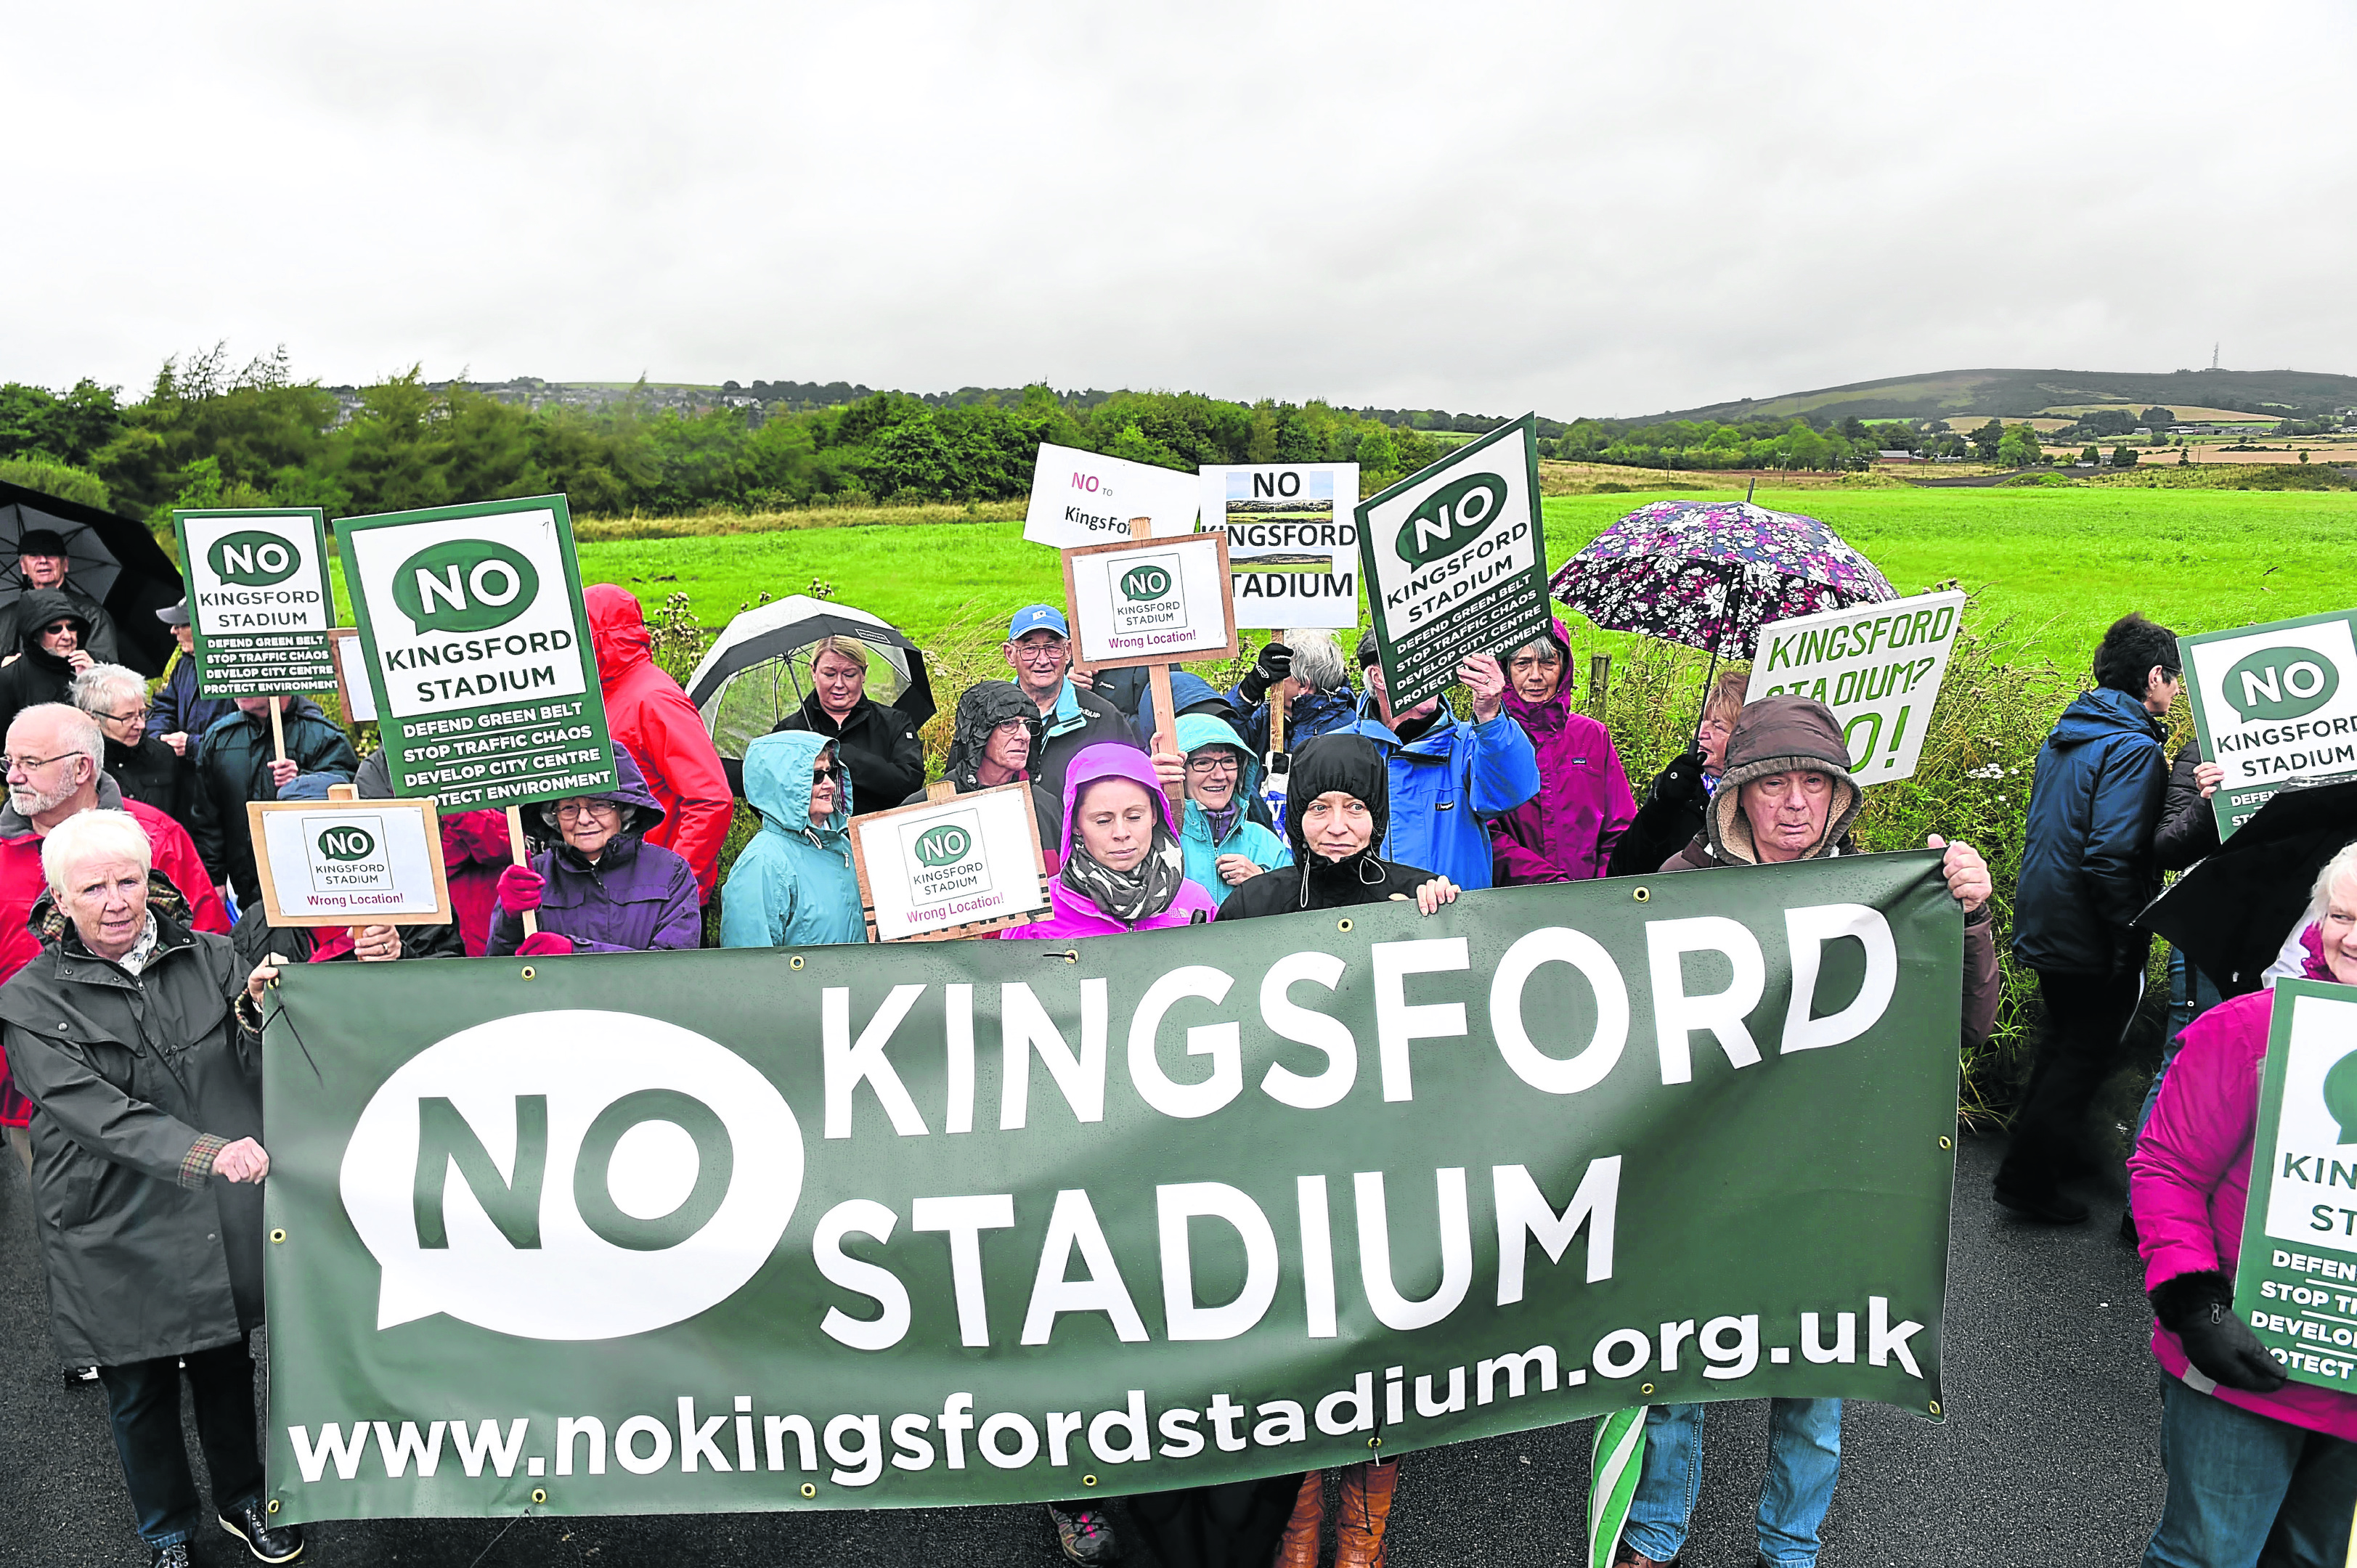 No Kingsford Stadium supporters as Aberdeen City councillors visit the Kingsford site between Westhill and Kingswells.